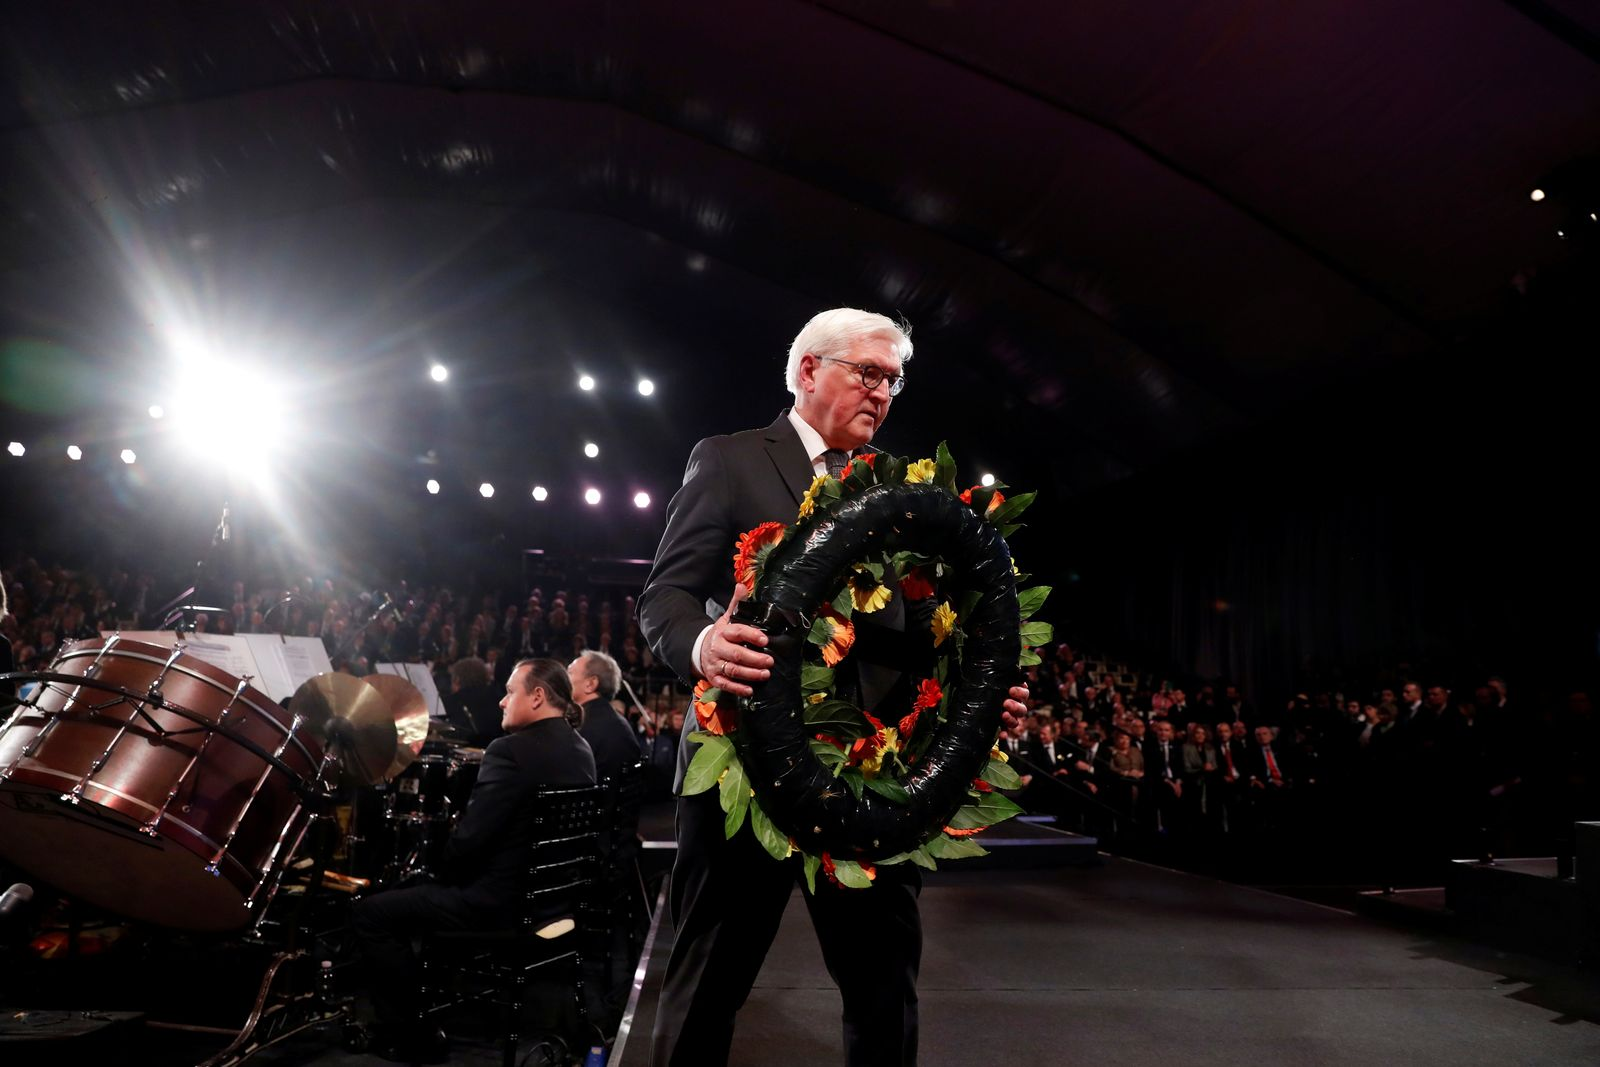 German President Frank-Walter Steinmeier takes part in a wreath-laying ceremony at the World Holocaust Forum, at Yad Vashem Holocaust memorial centre in Jerusalem